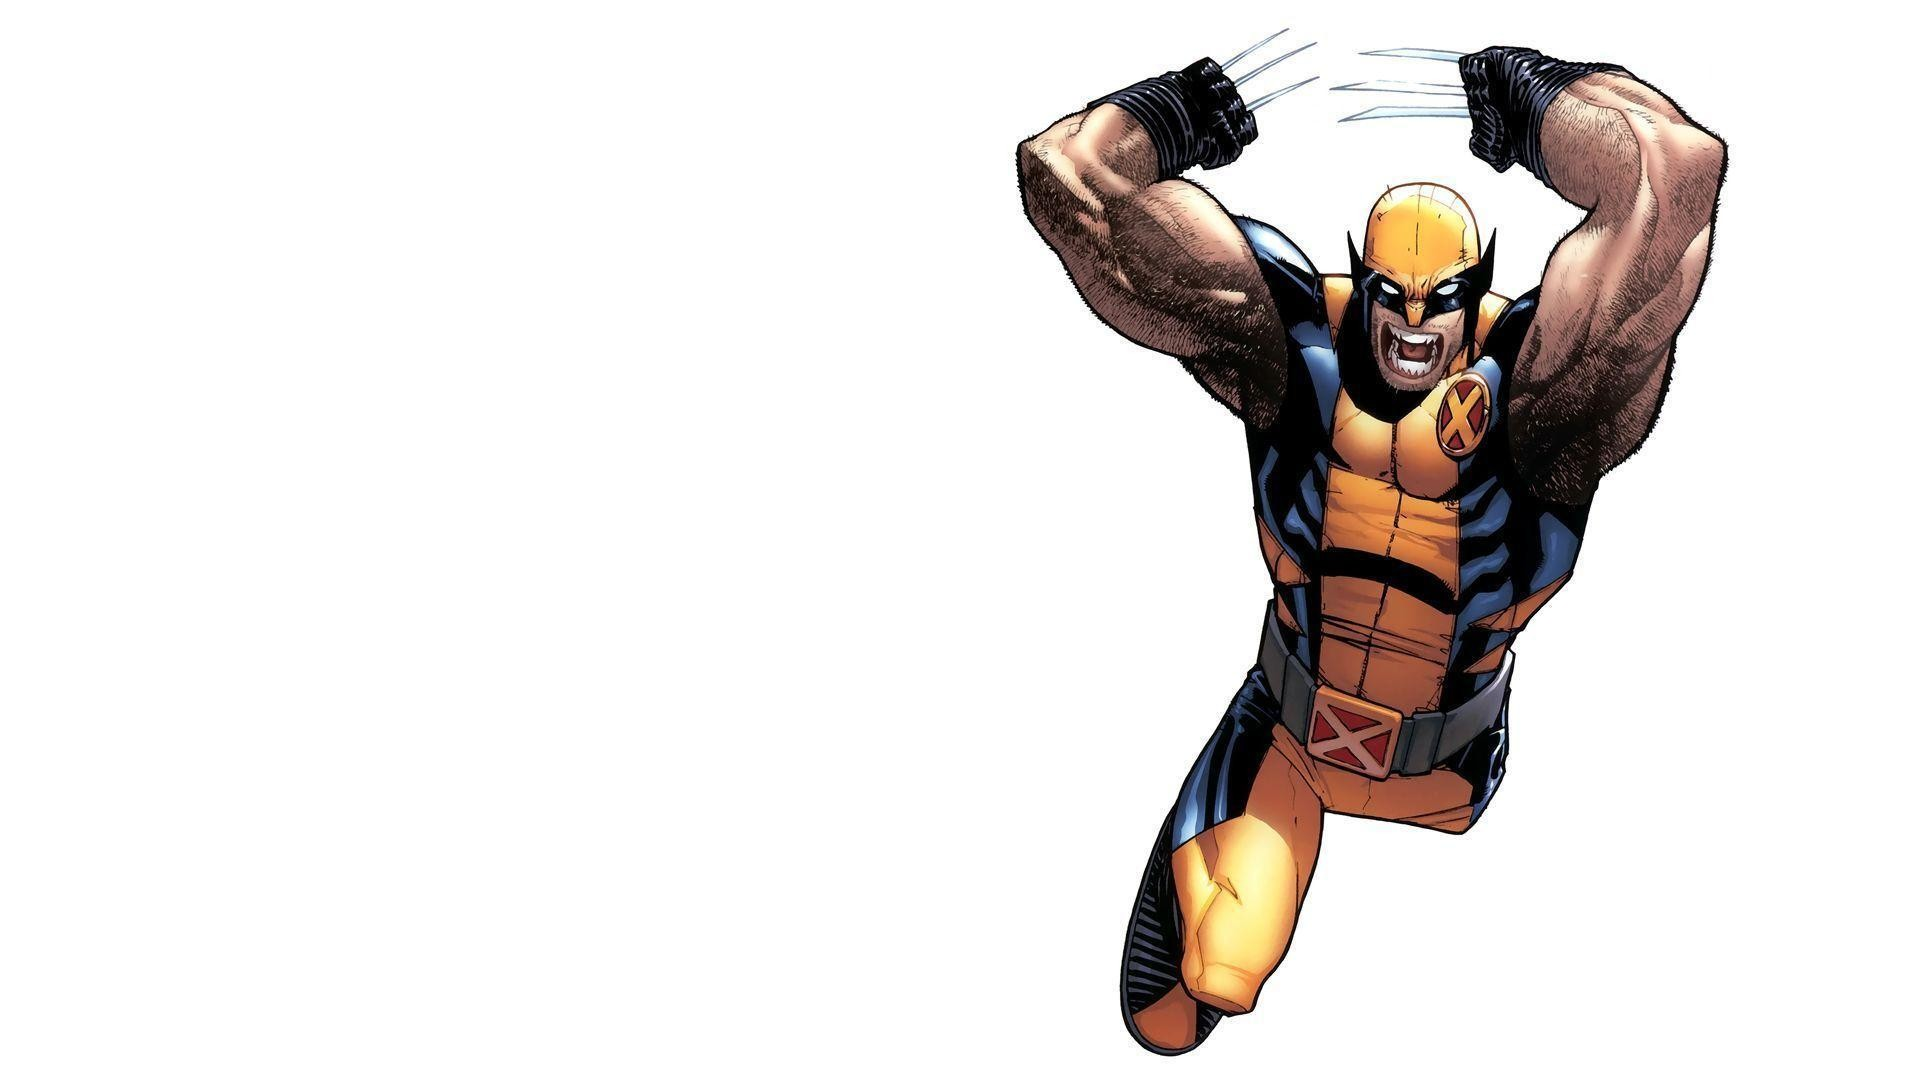 1920x1080 Wolverine Marvel wallpaper 213938